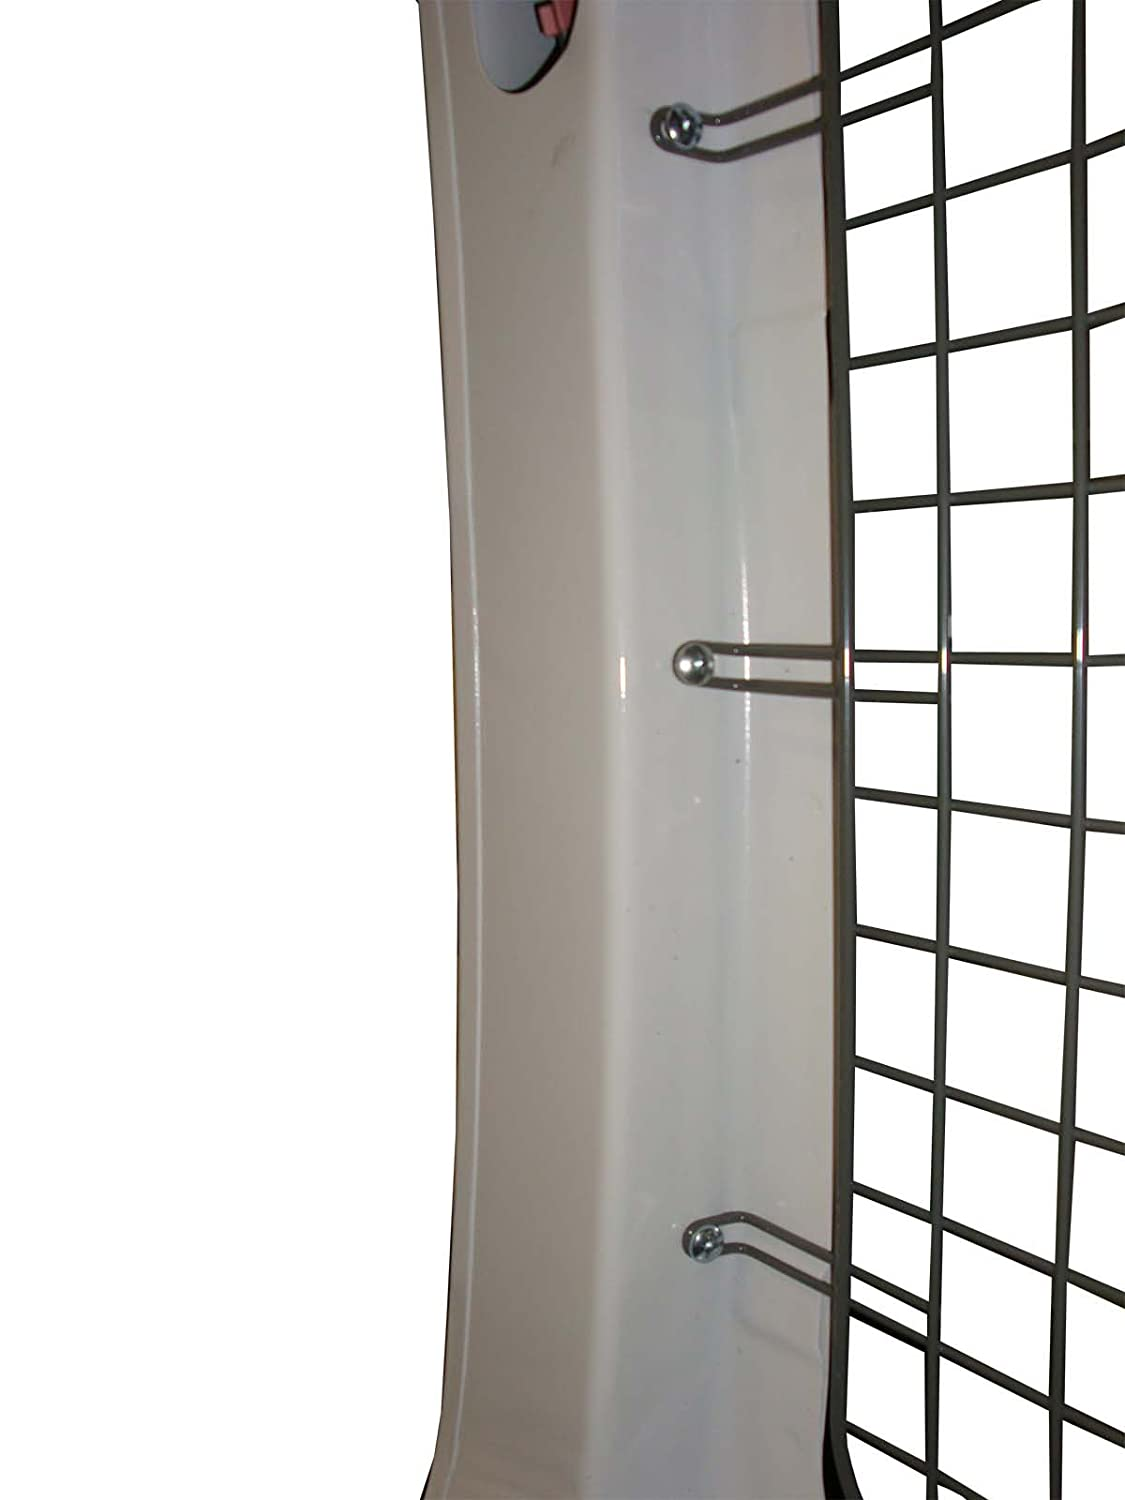 Van Window Safety Screens set of 4 to fit Ford Econoline 1996-2014